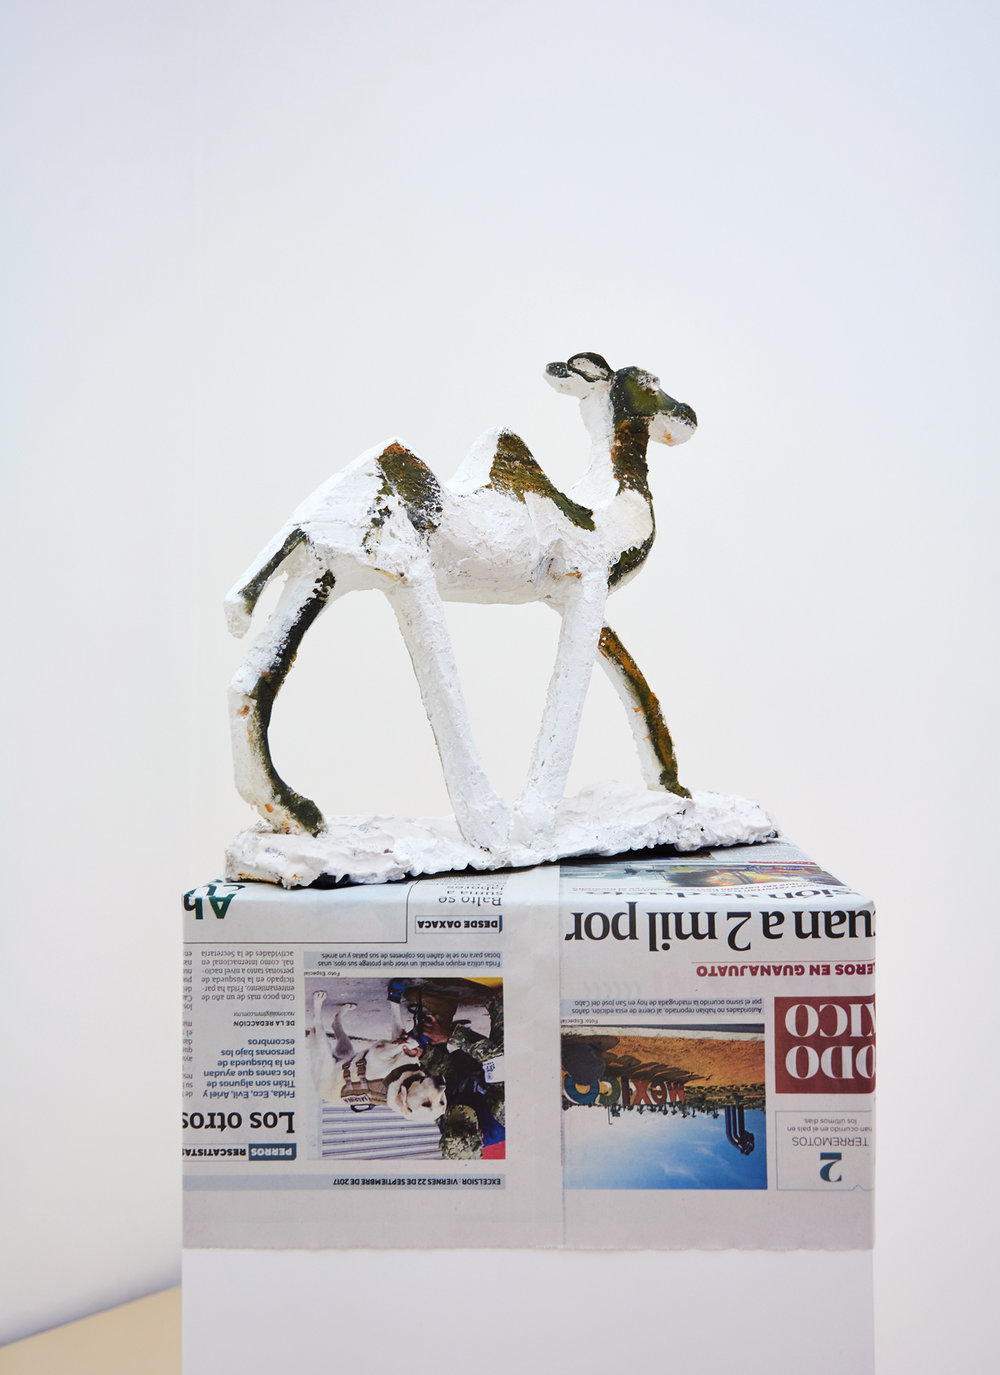 Lin May Saeed, Djamil sculpture, 2017. Steel, styrofoam, gypsum, acrylic paint, 28 x 39 x 10 cm